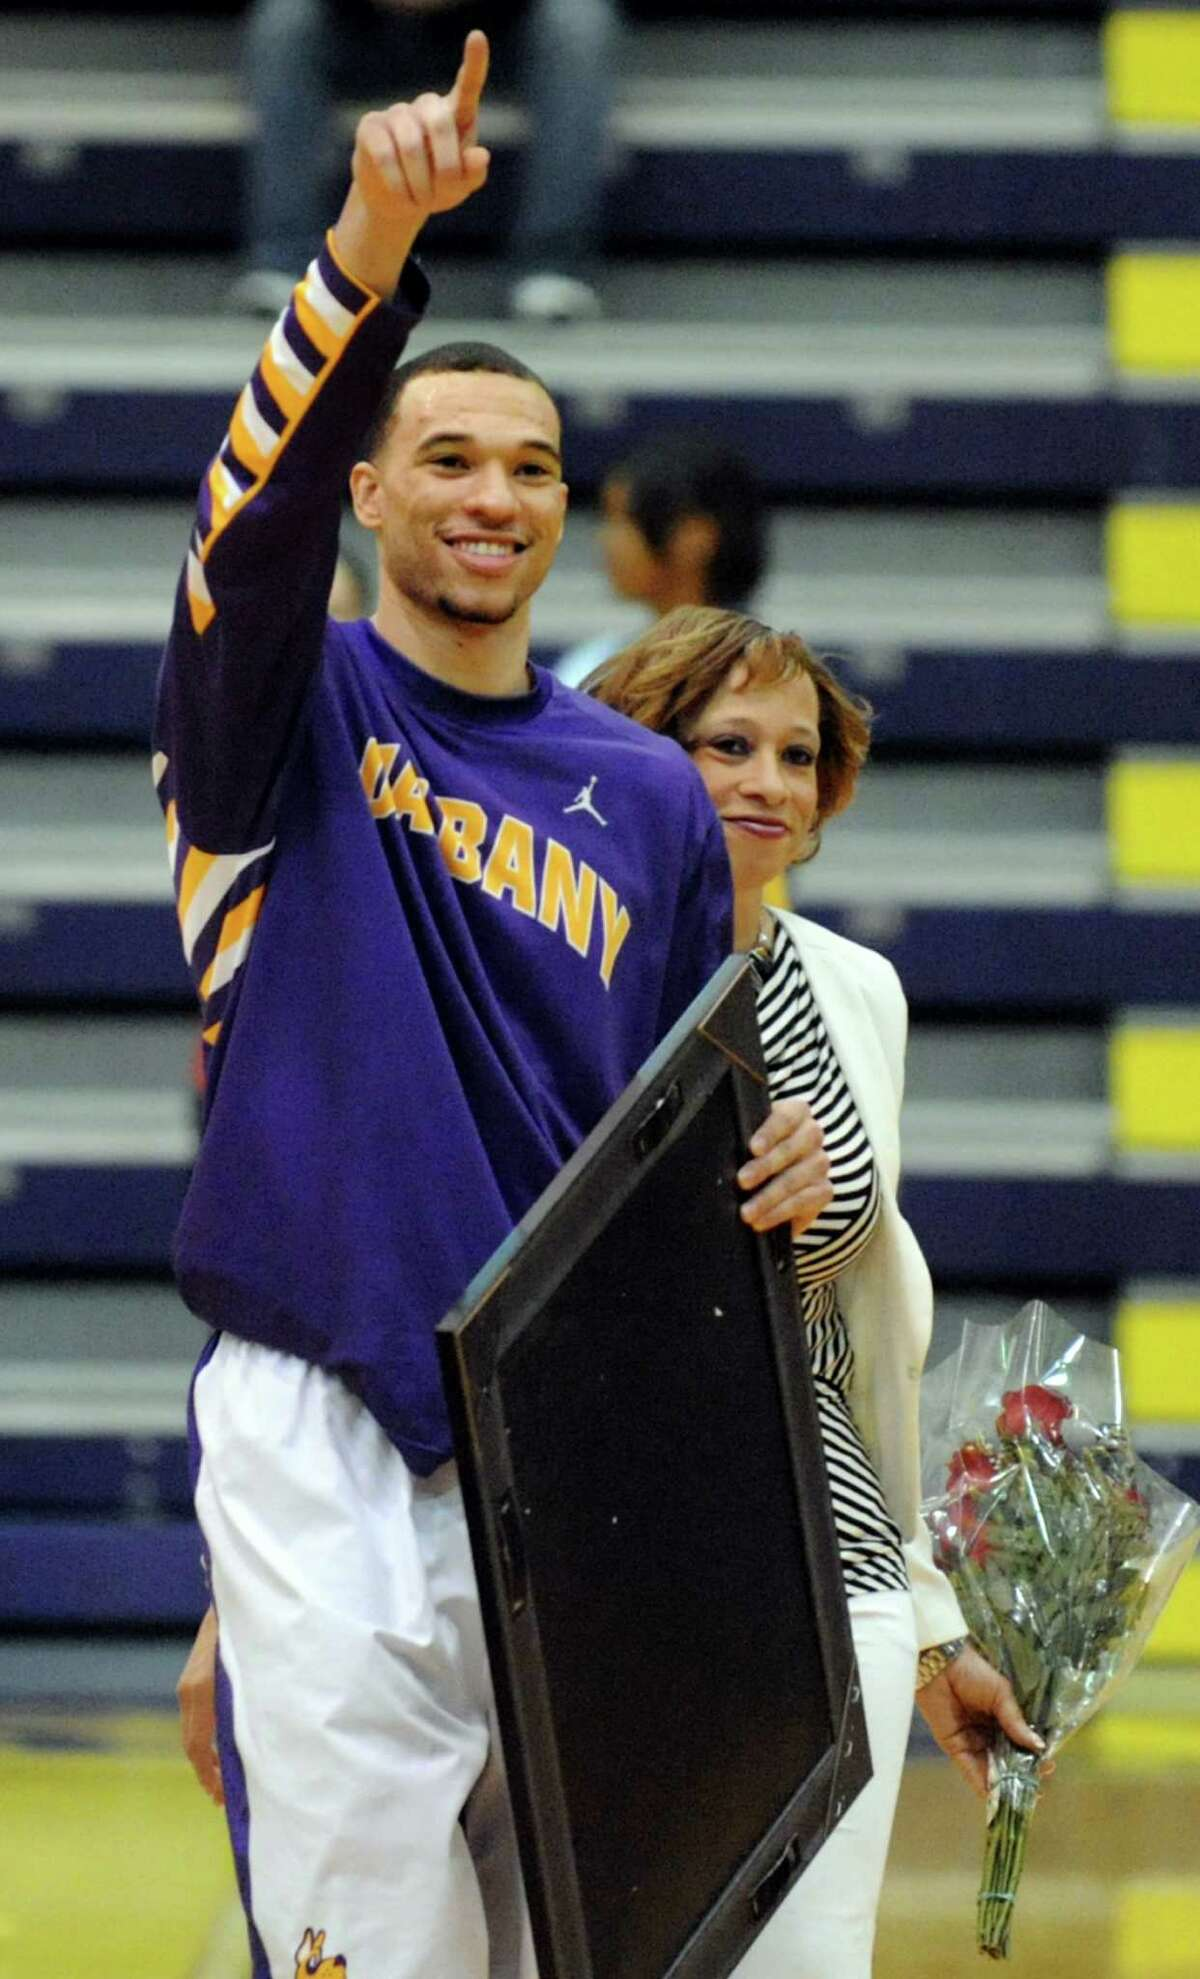 UAlbany's Gary Johnson salutes his fans as he celebrates senior night before their basketball game against New Hampshire on Thursday, Feb. 27, 2014, UAlbany in Albany, N.Y. (Cindy Schultz / Times Union)